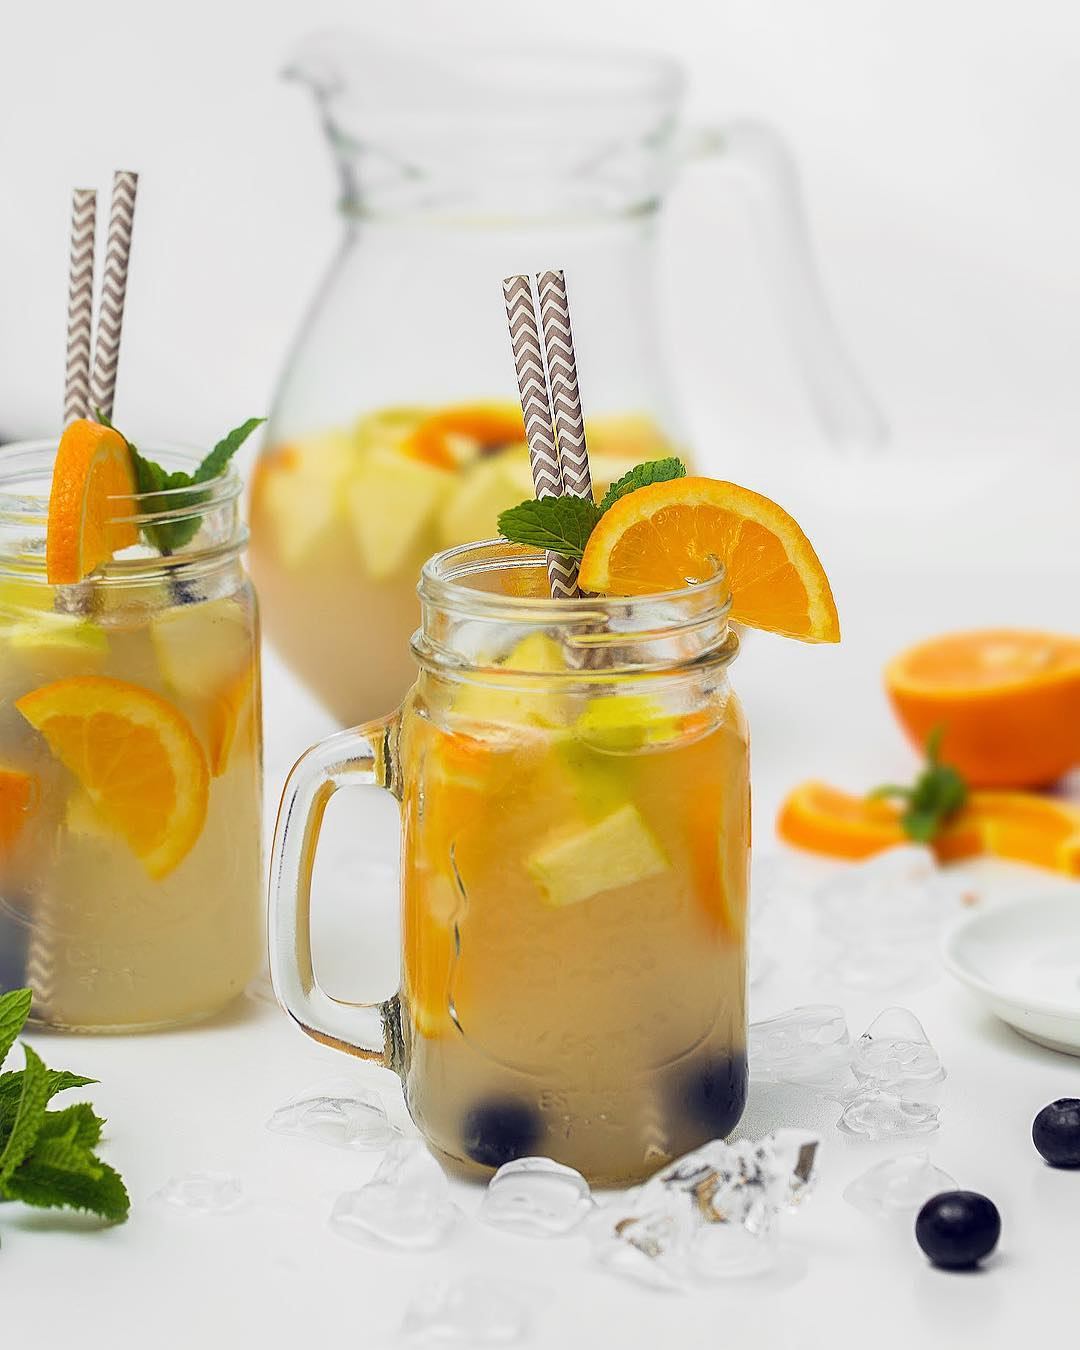 PALM WINE SANGRIA RECIPE